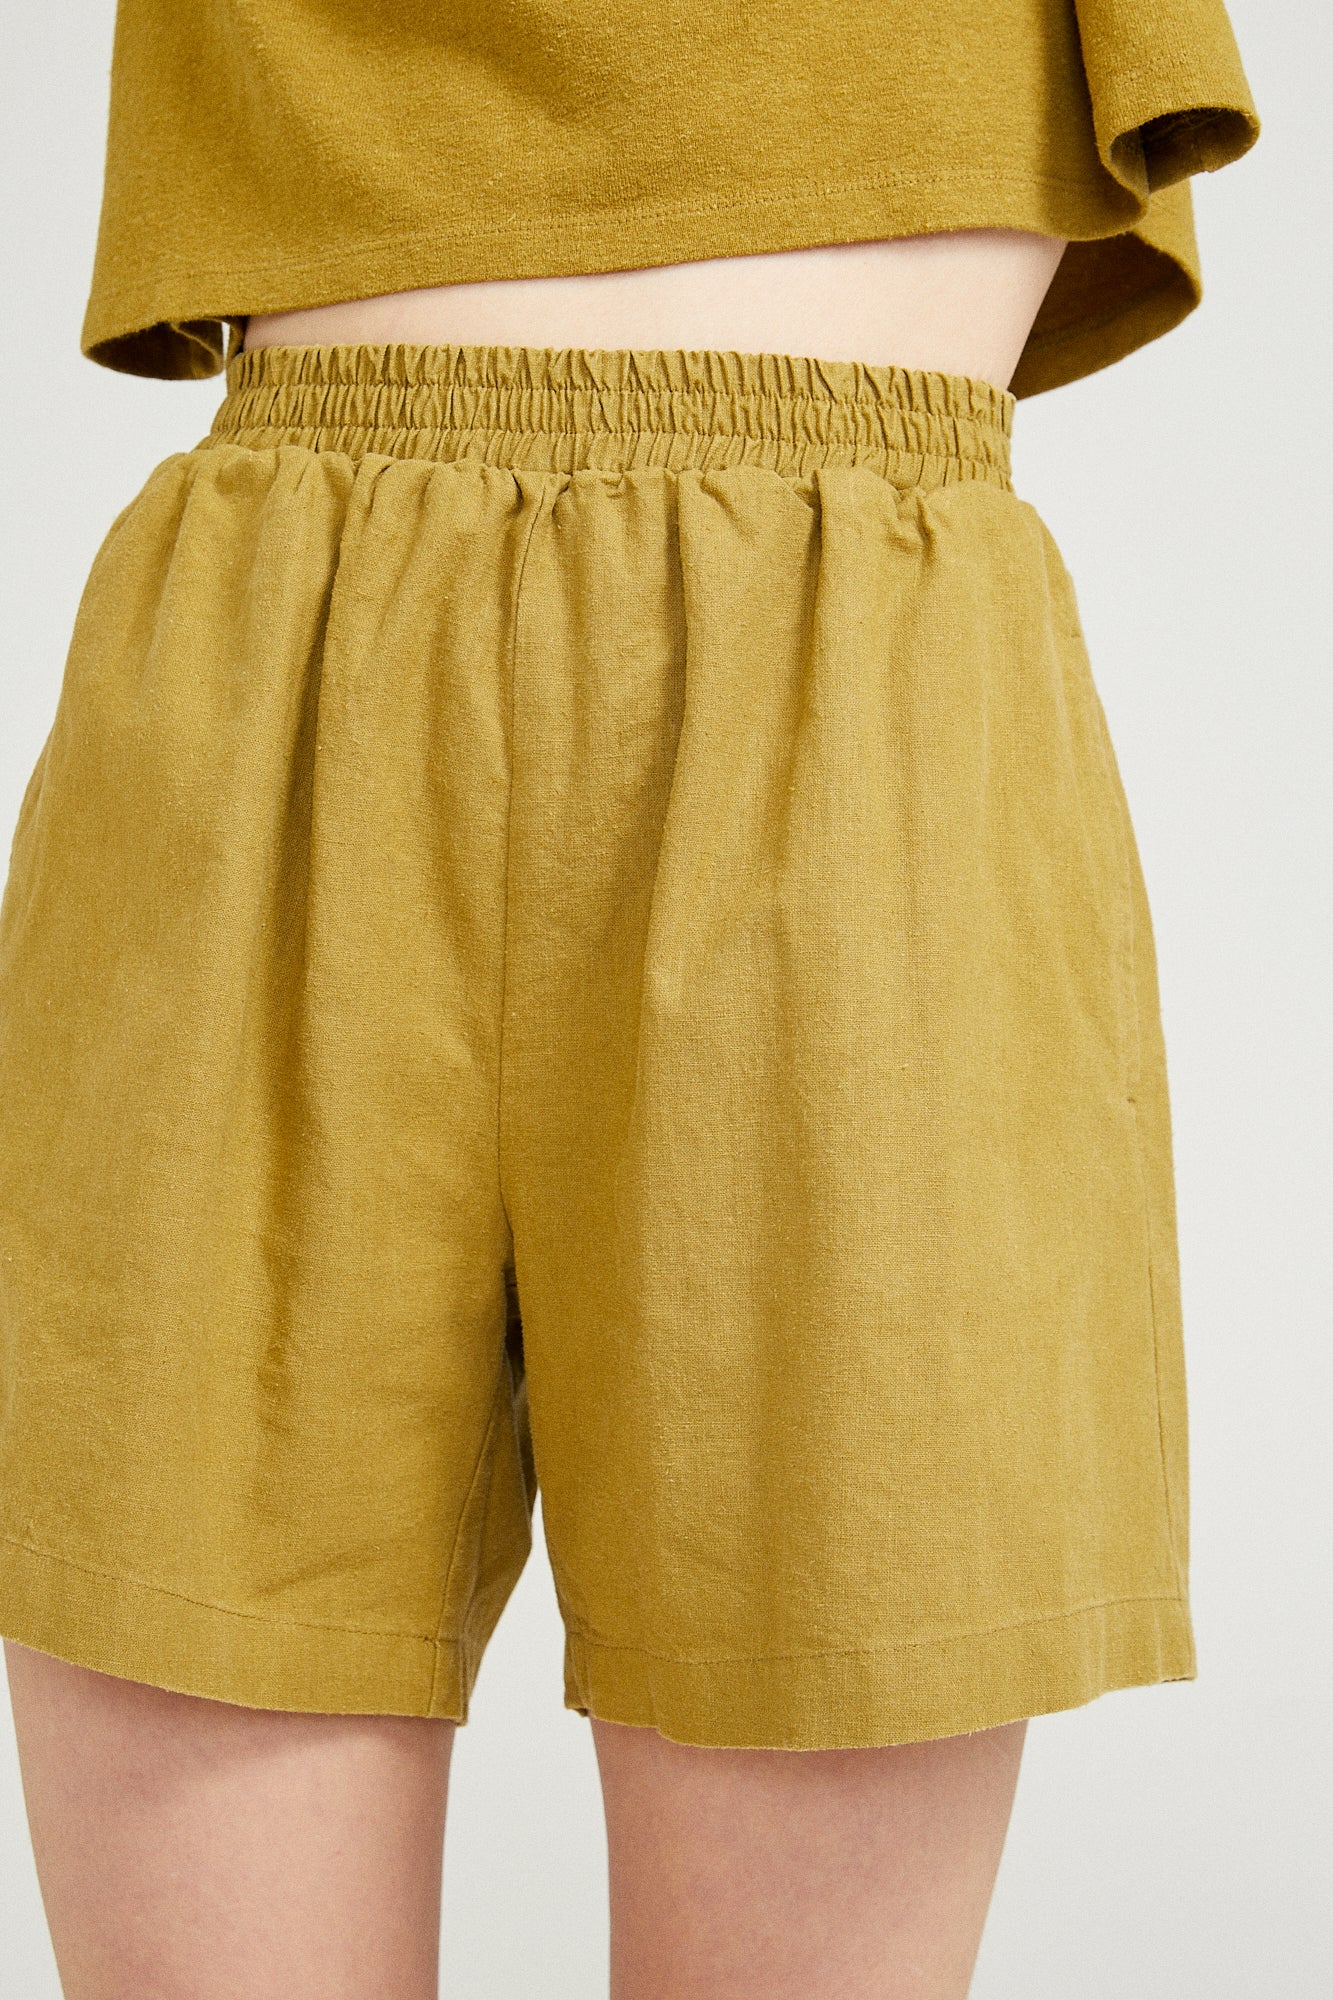 Hemp Summer Shorts